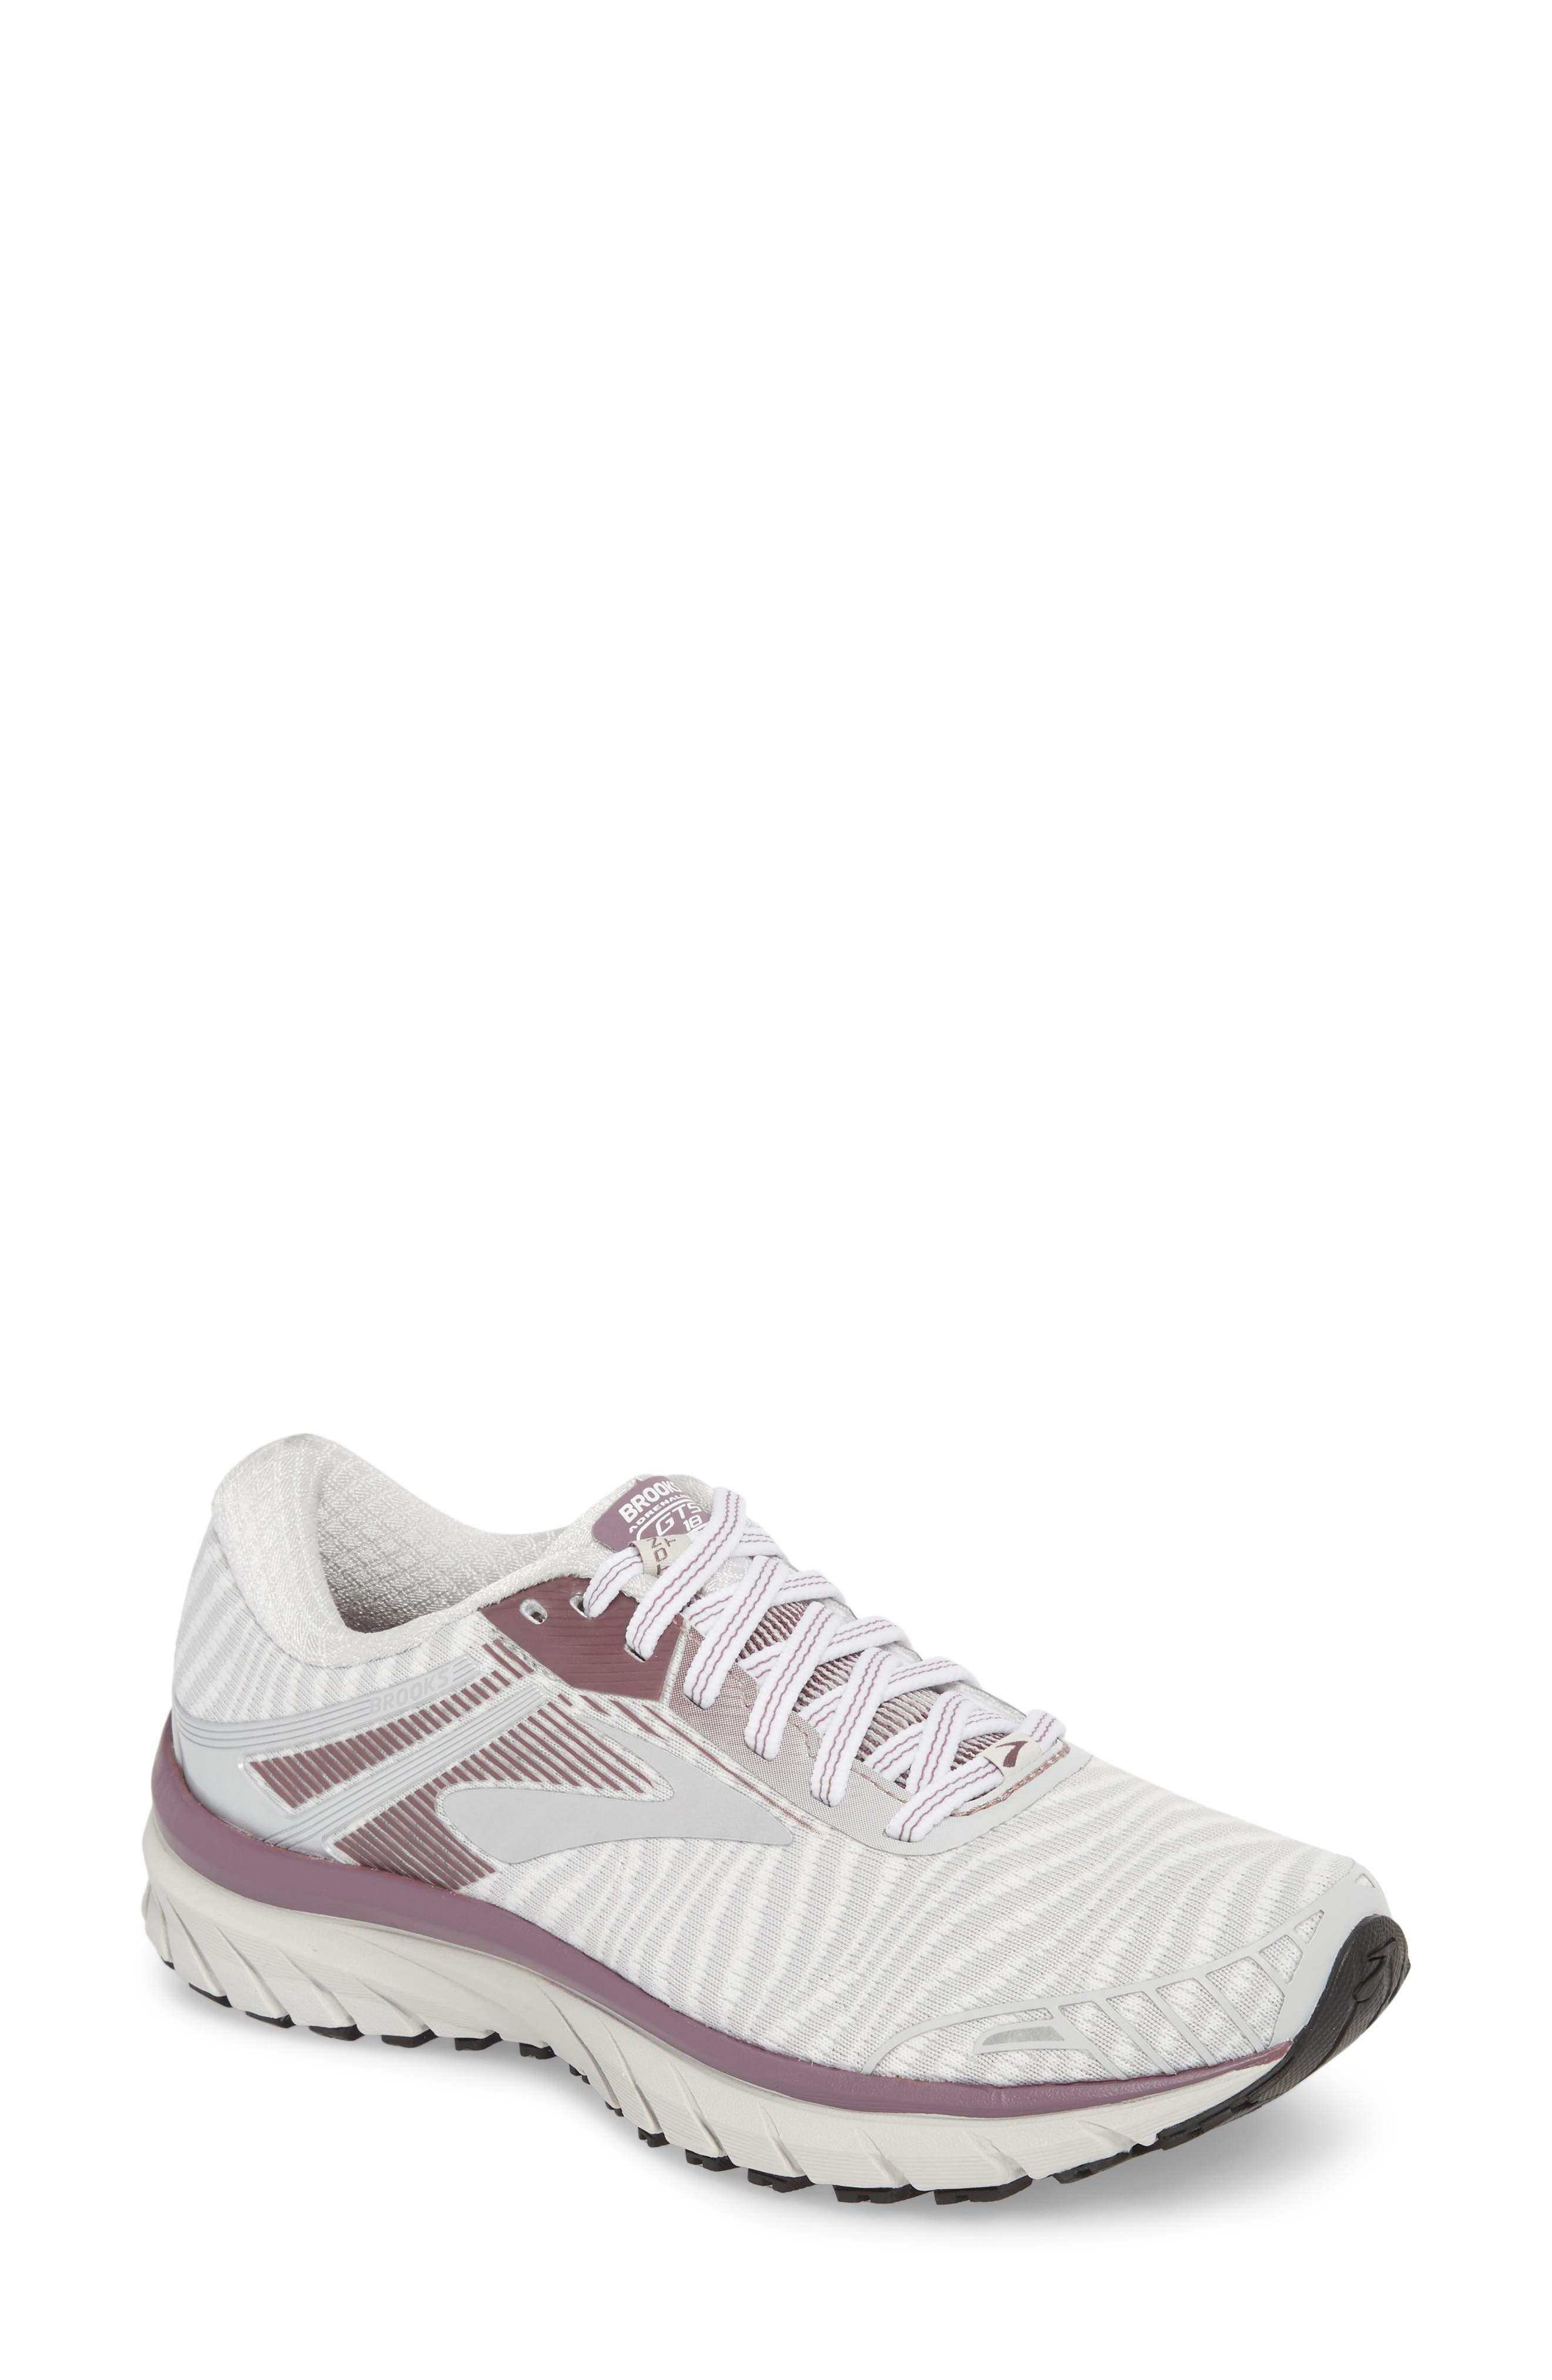 Adrenaline GTS 18 Running Shoe,                             Main thumbnail 1, color,                             White/ Purple/ Grey